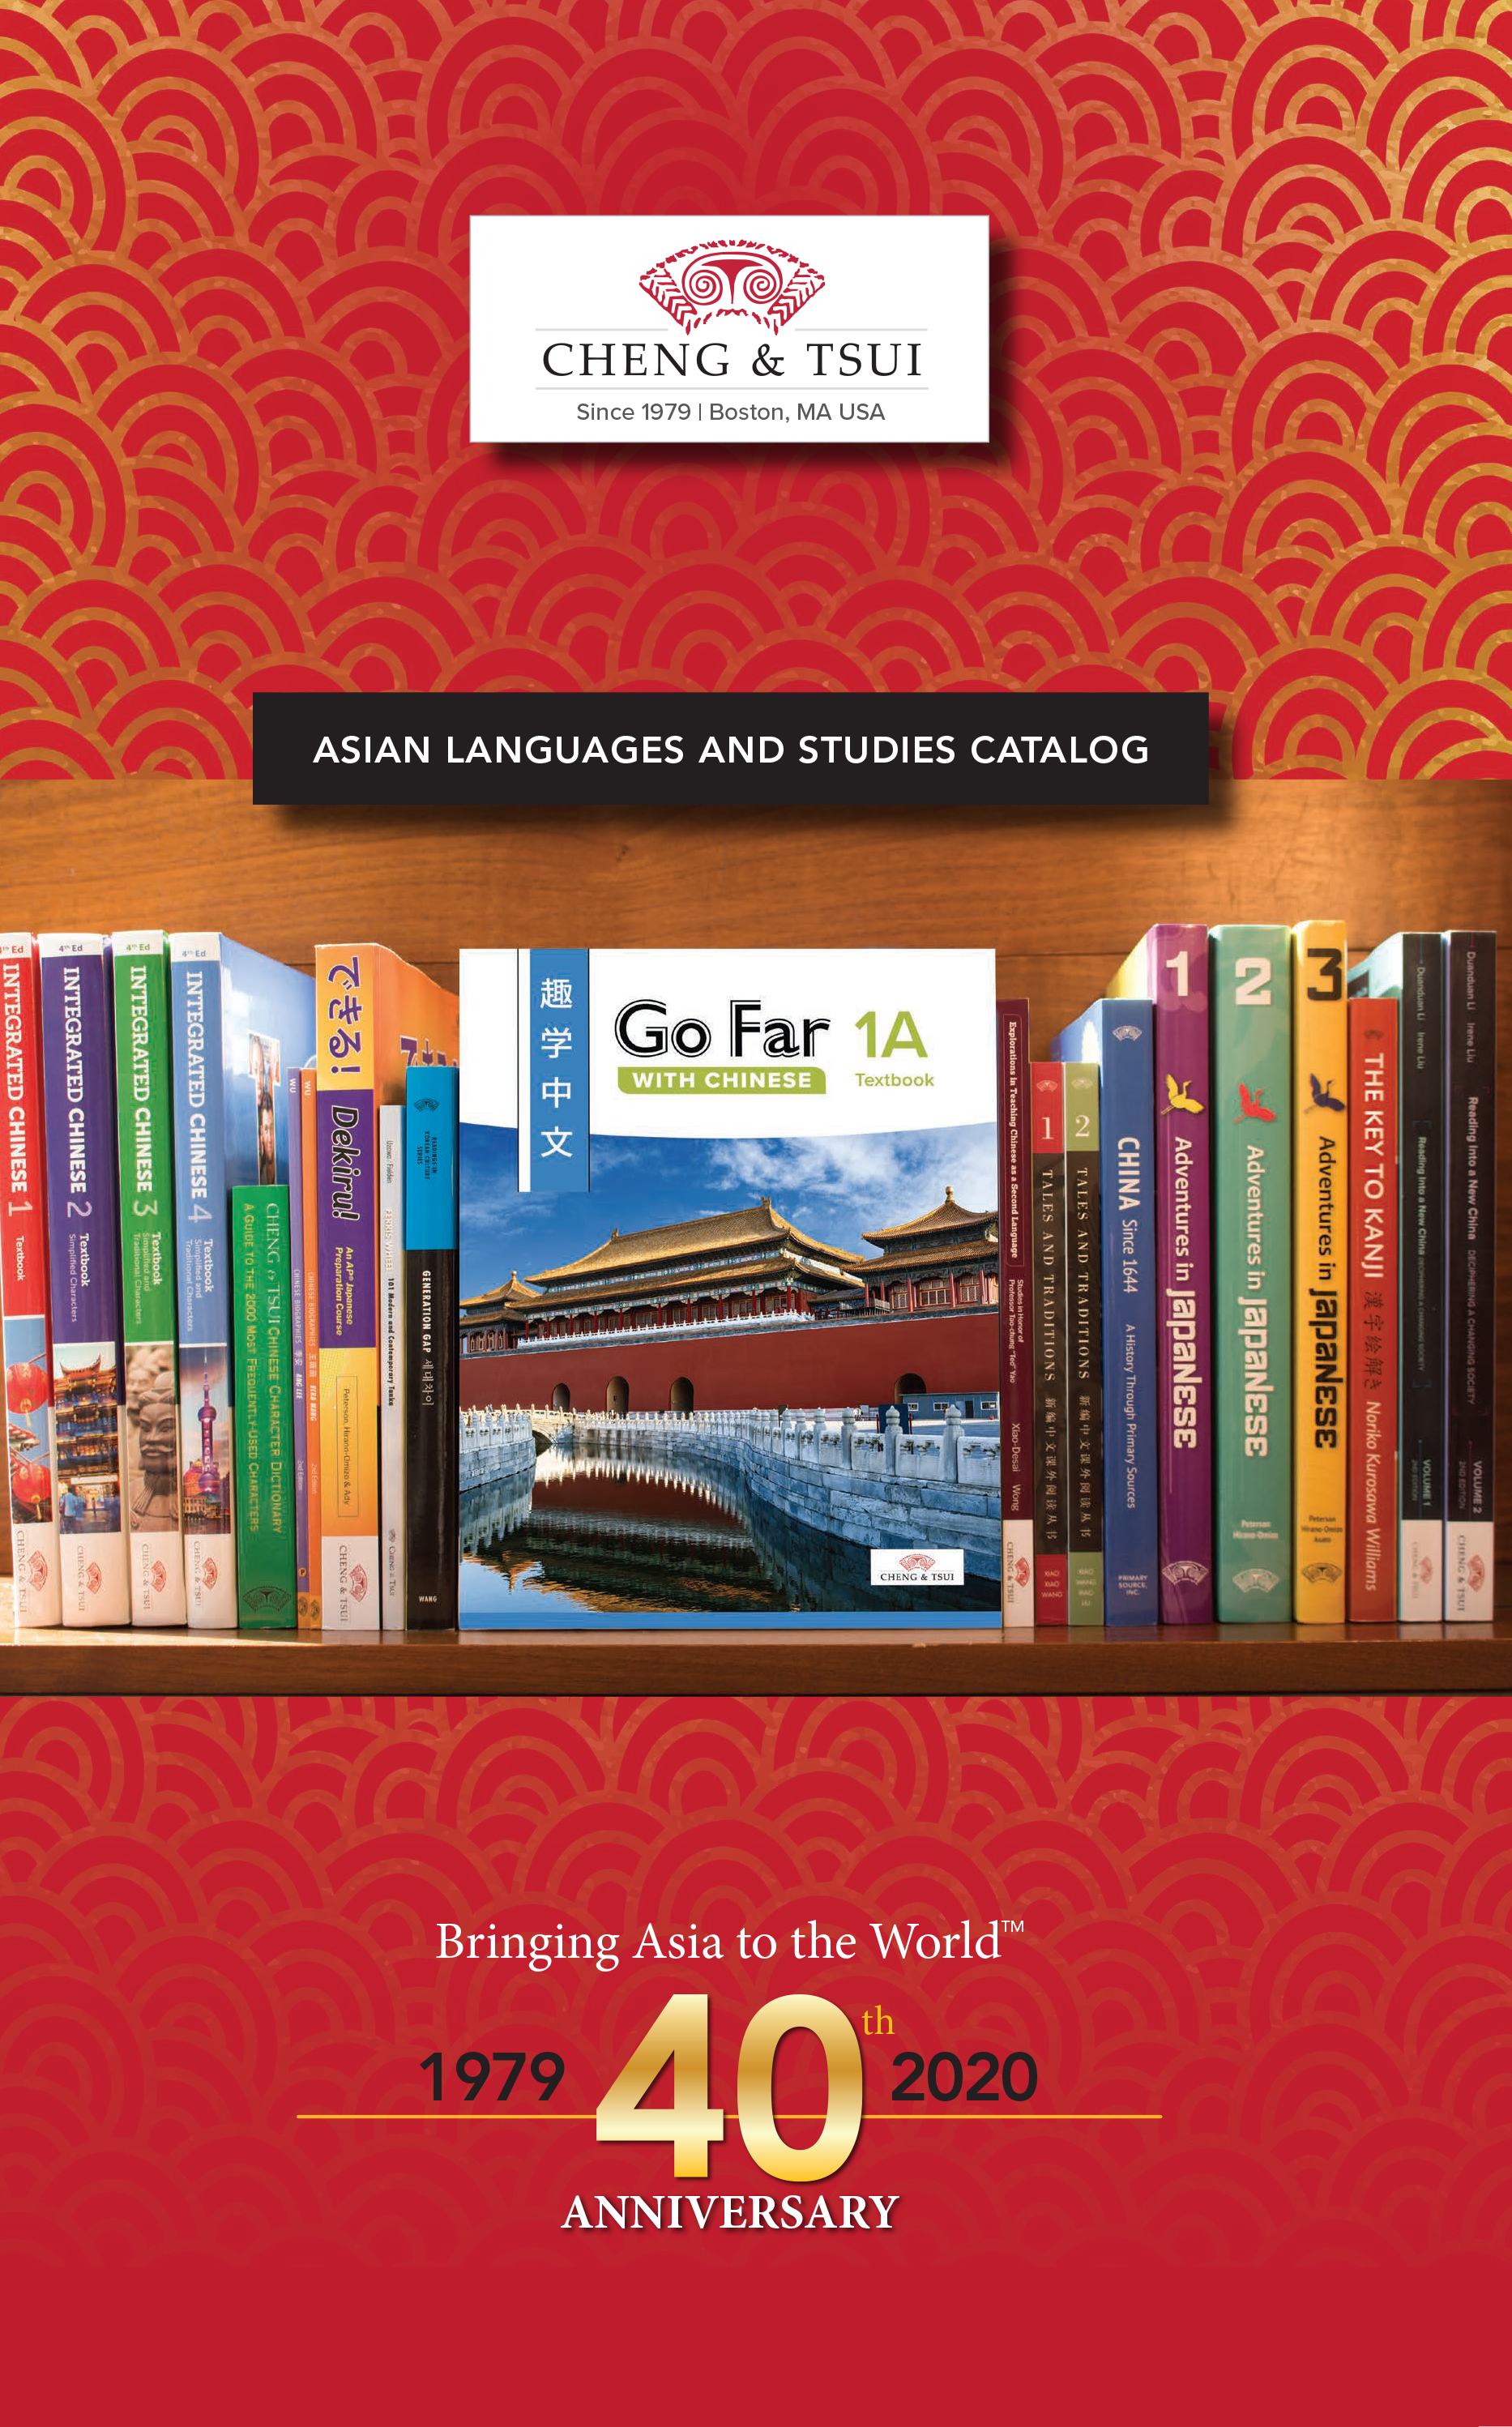 Cheng & Tsui 2020 Asian Languages and Studies Catalog cover